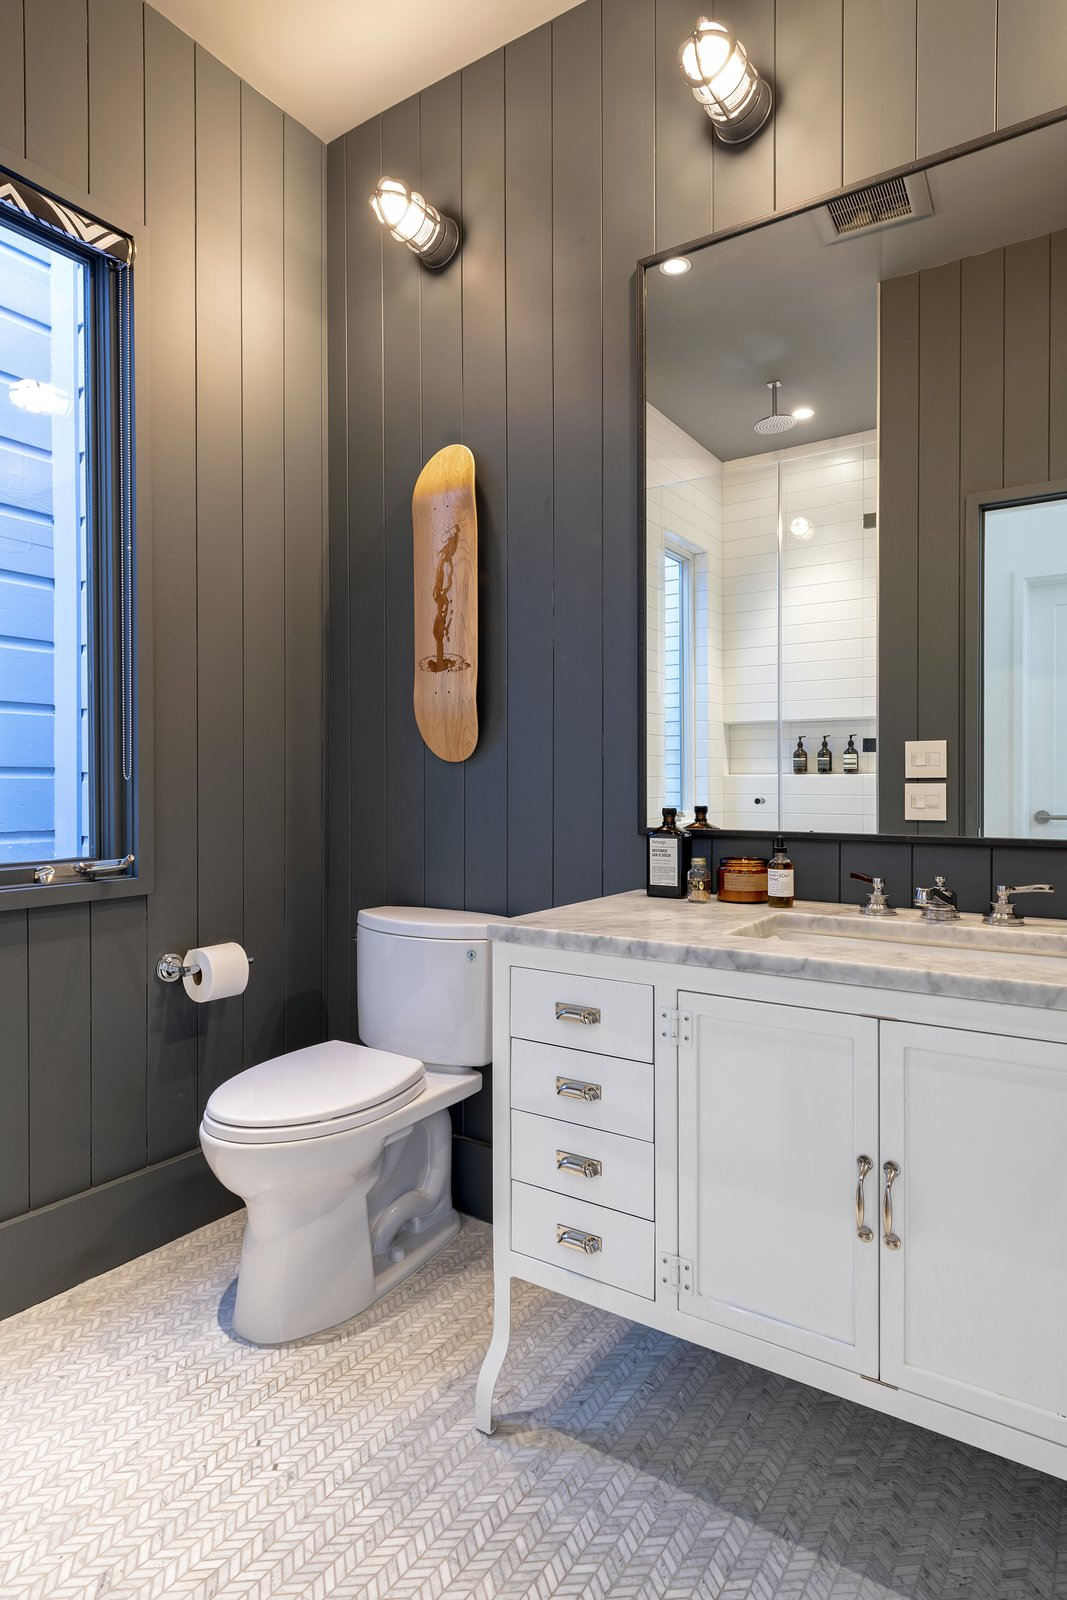 Bath Room, Drop In Sink, Marble Counter, Ceramic Tile Floor, and Wall Lighting Guest Bath  Precita Park Residence by Studio Sarah Willmer, Architecture